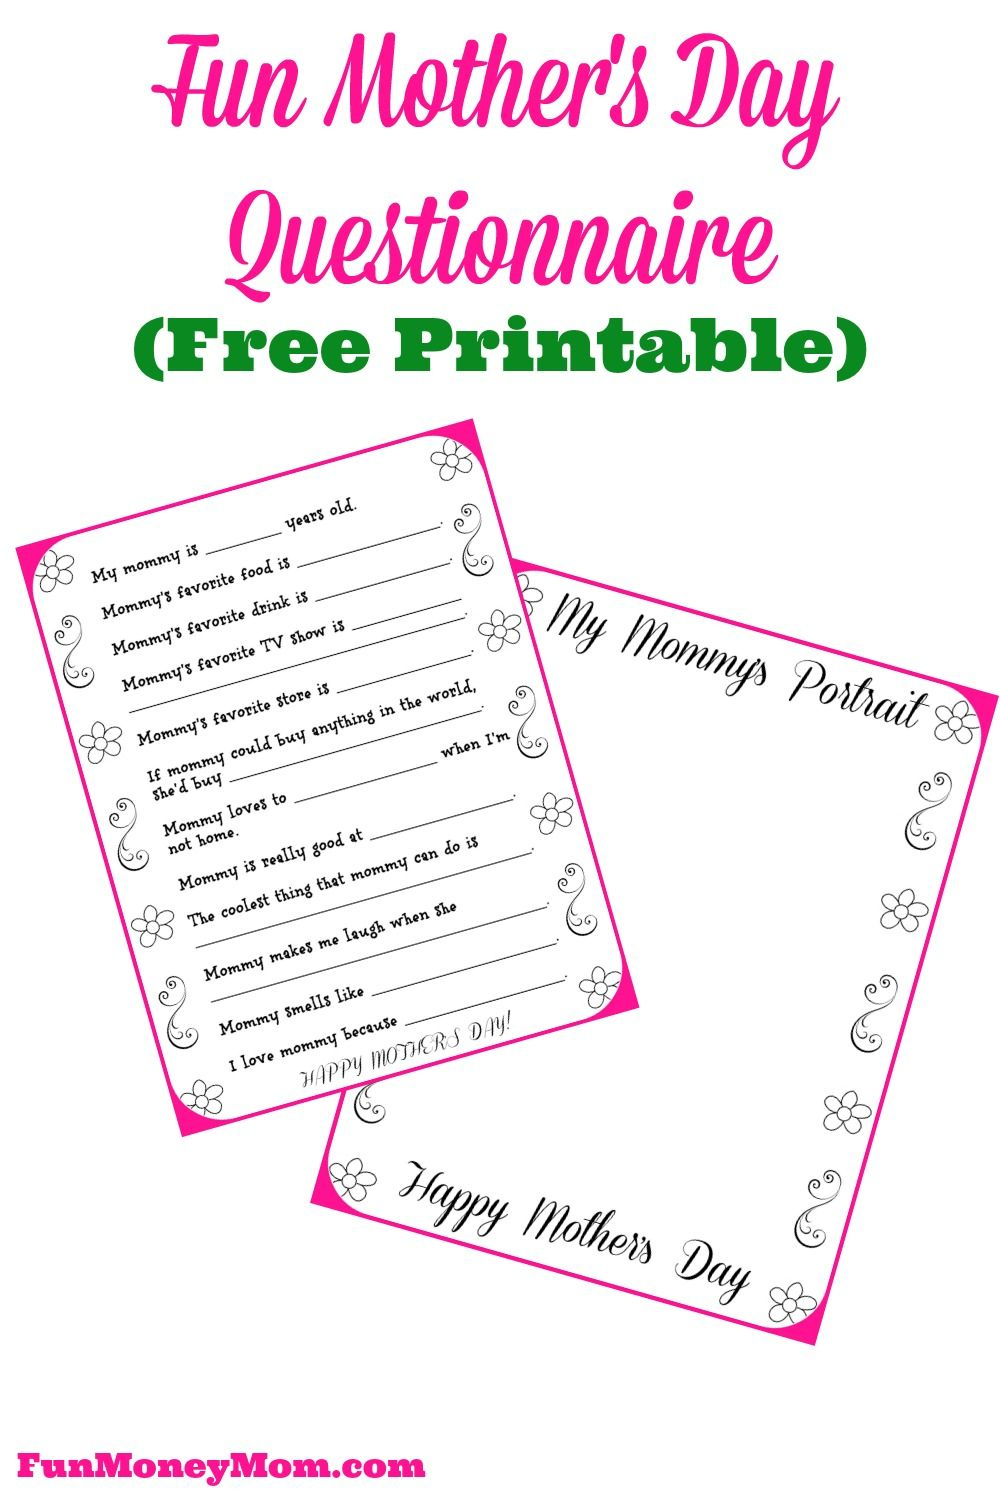 Free Printable Mother's Day Questionnaire & Portrait Page | Best - Free Printable Mothers Day Questions